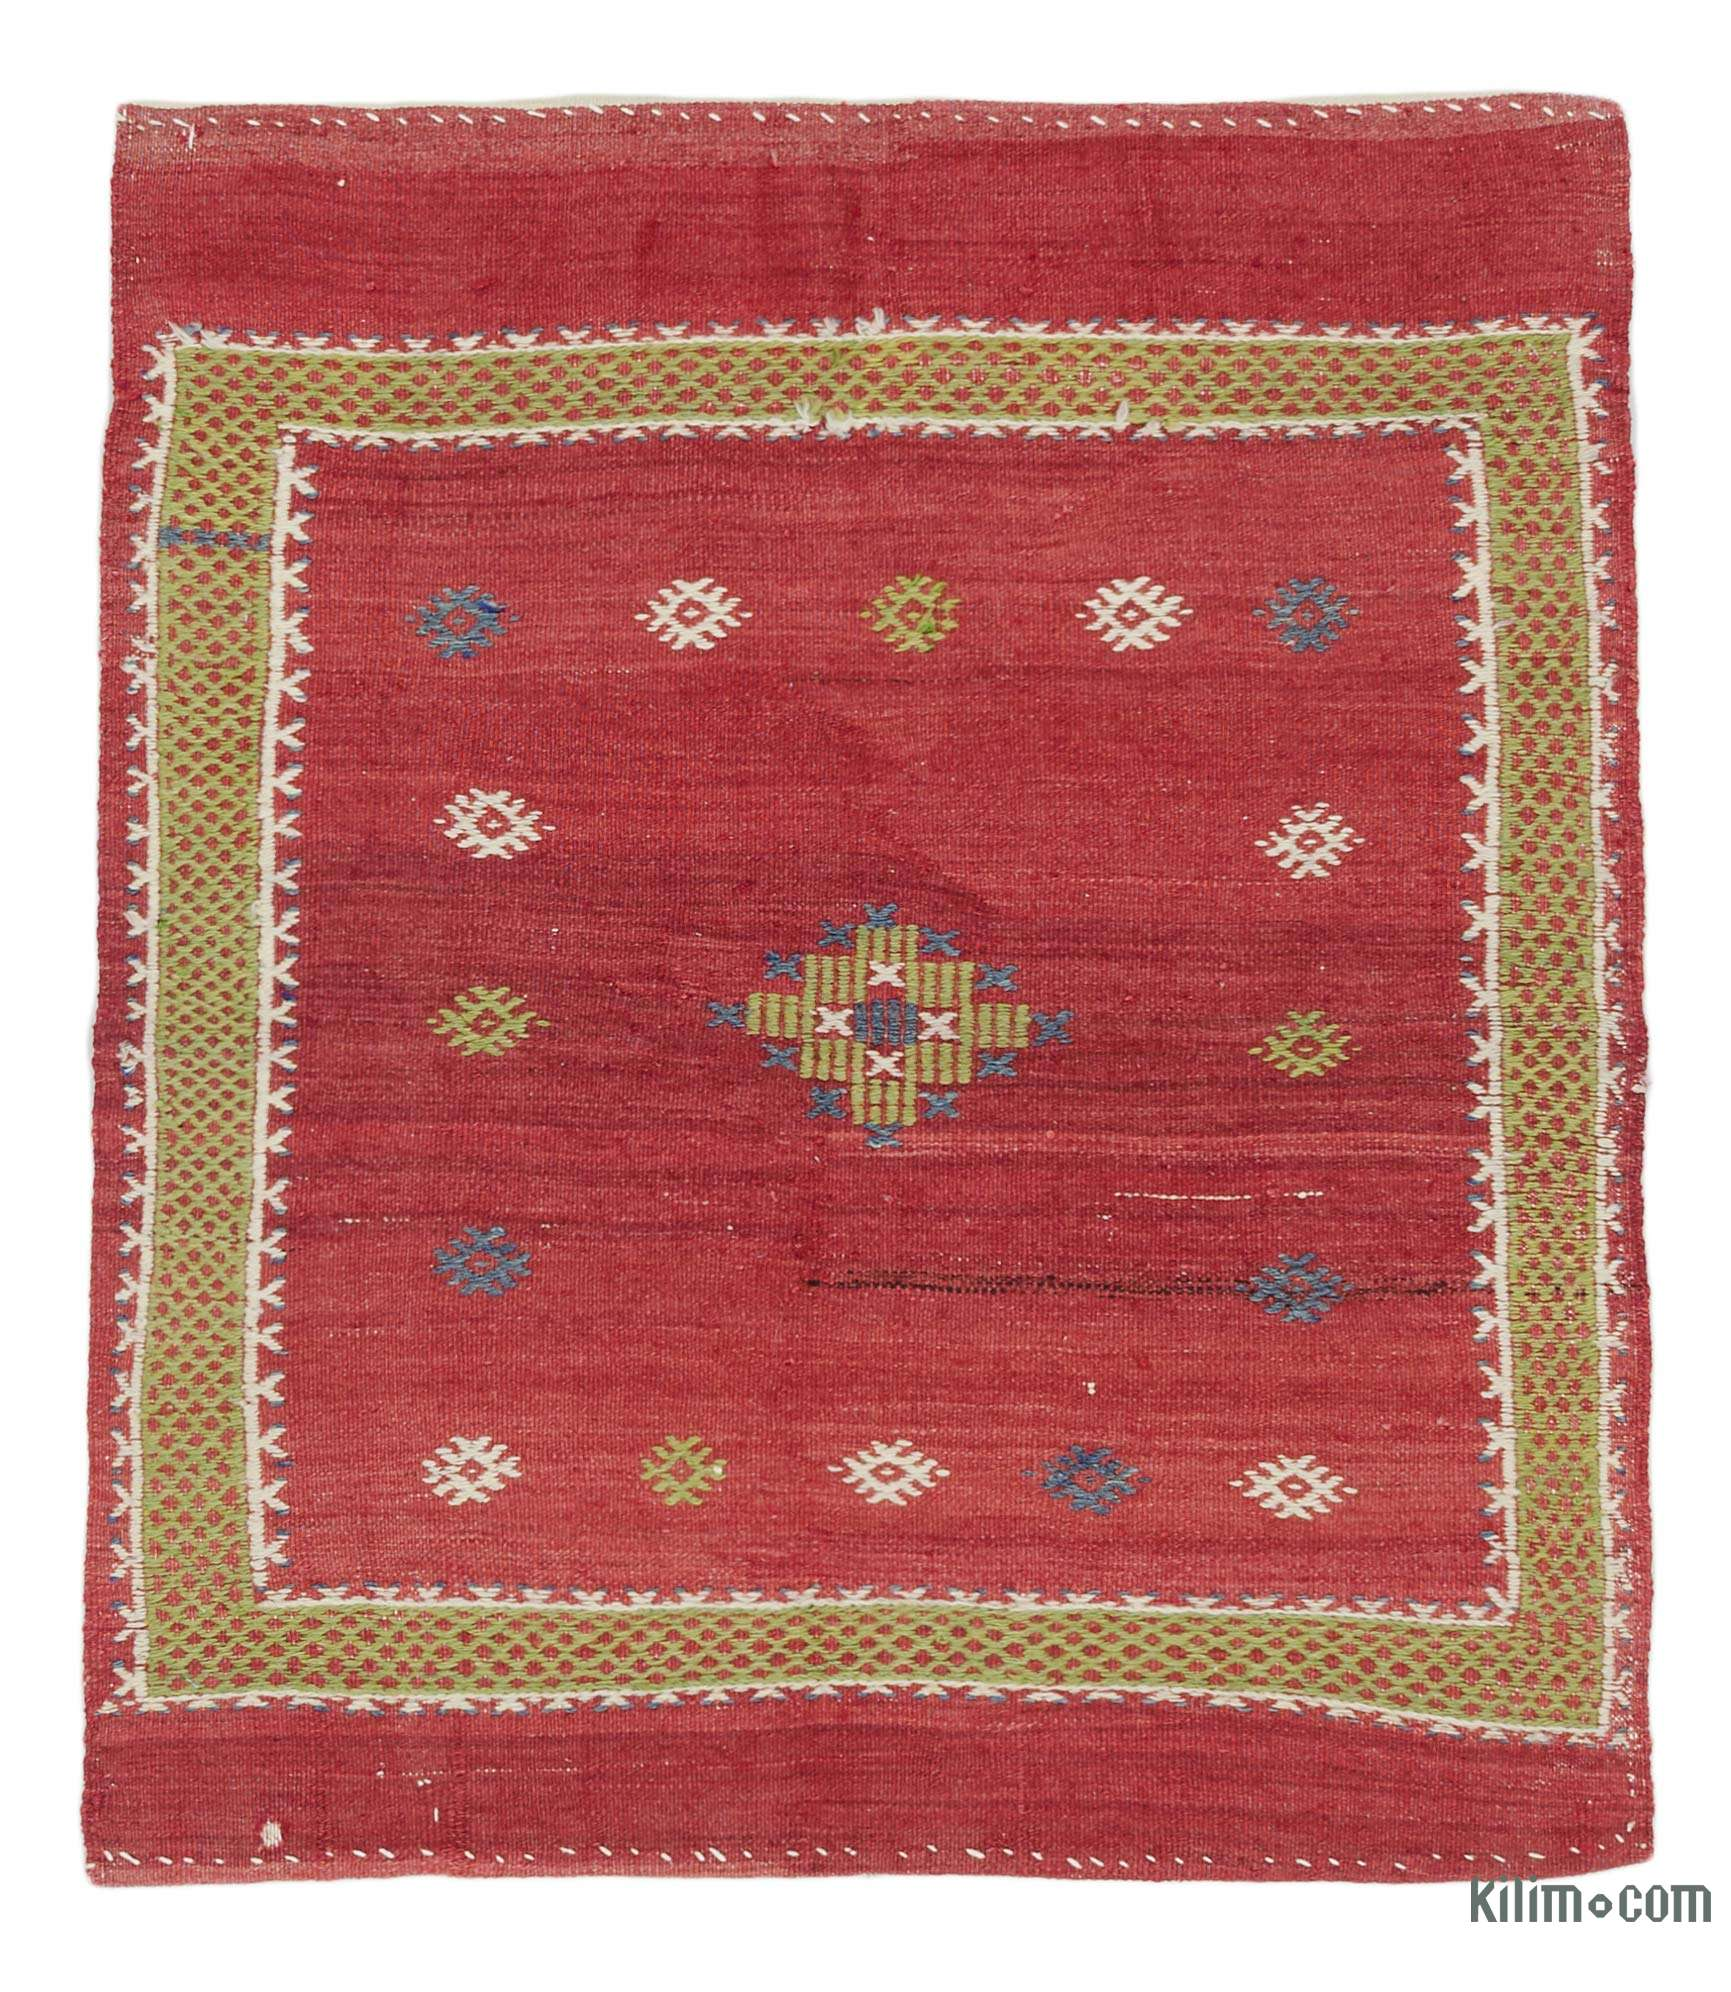 Small Size Kilim Rugs